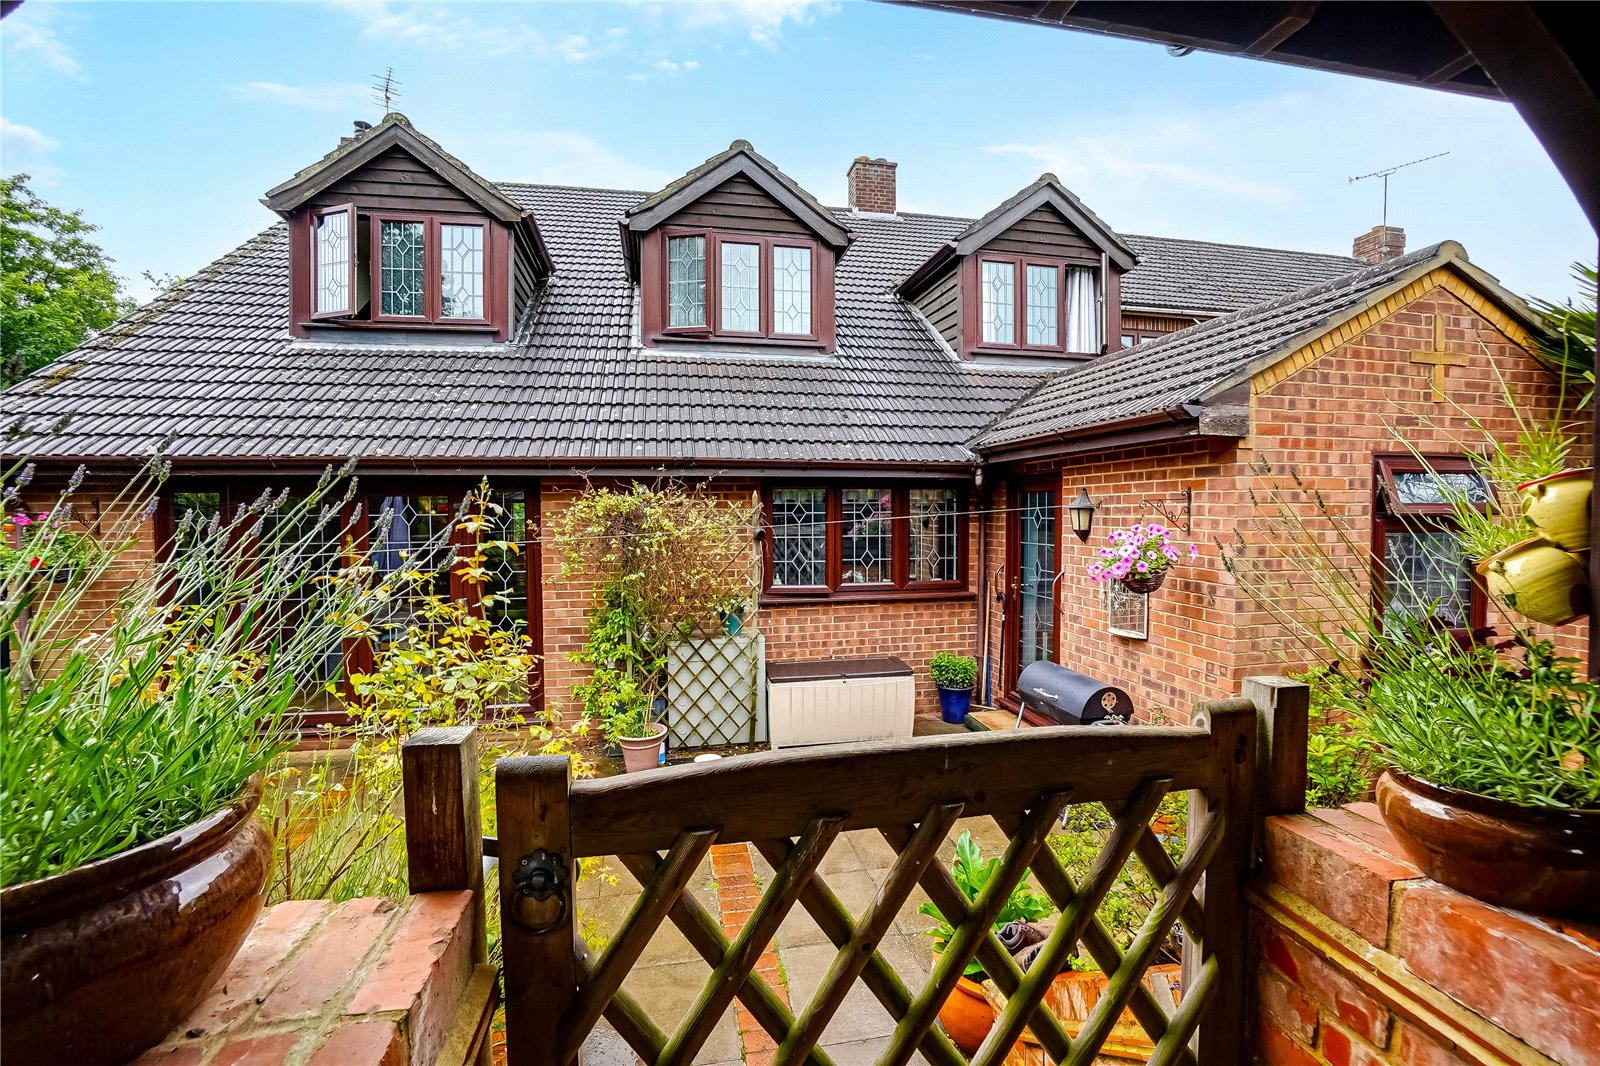 4 bed house for sale in Hermitage Lane, Maidstone 25